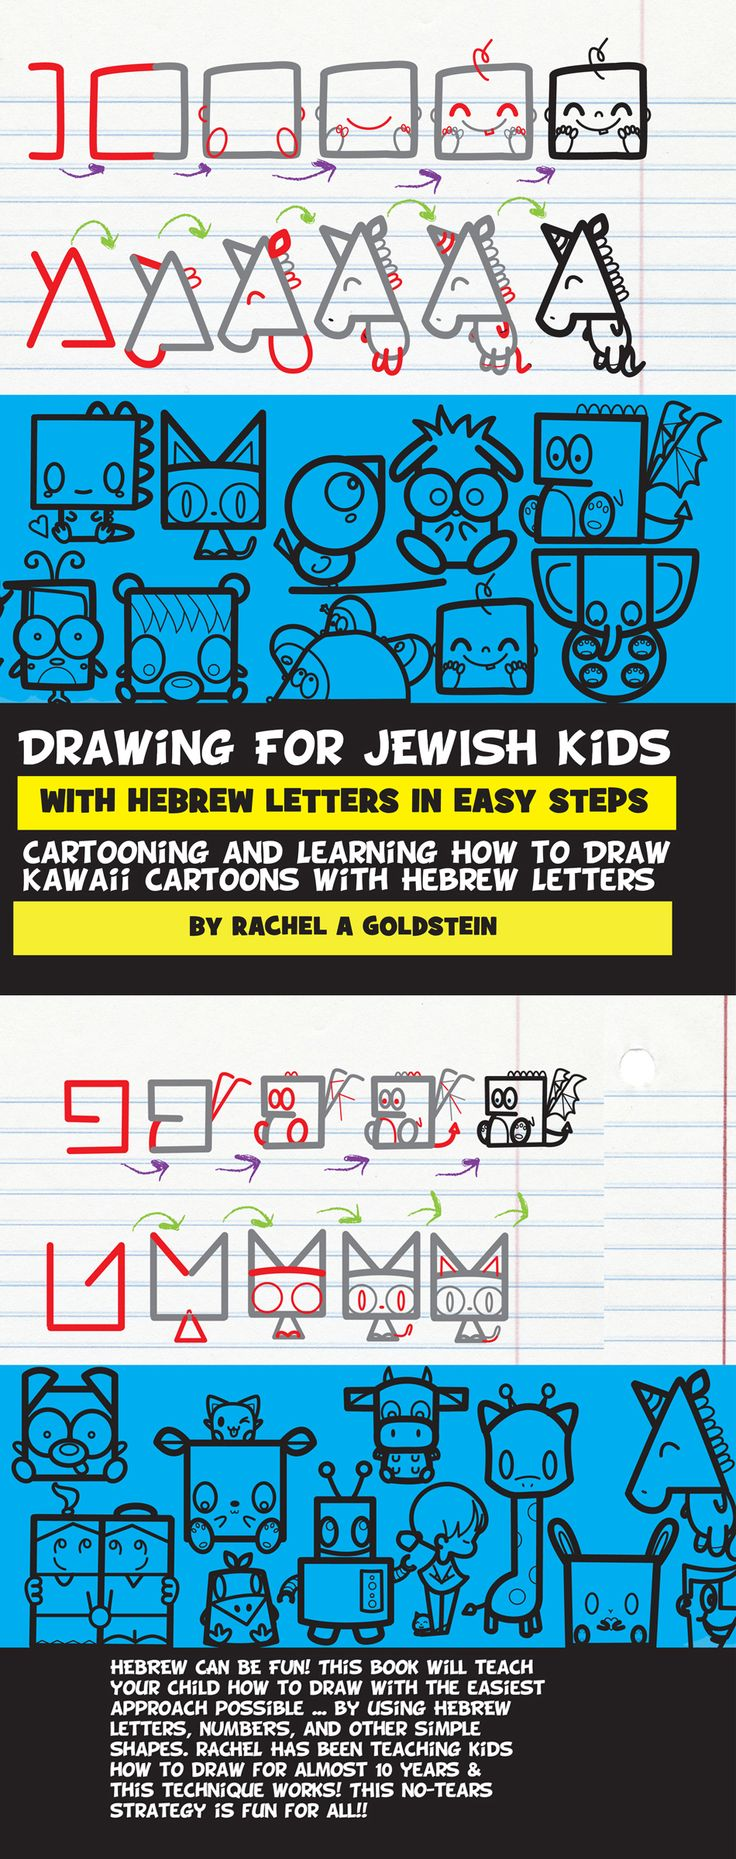 drawing book for kids with hebrew letters - Children Drawing Books